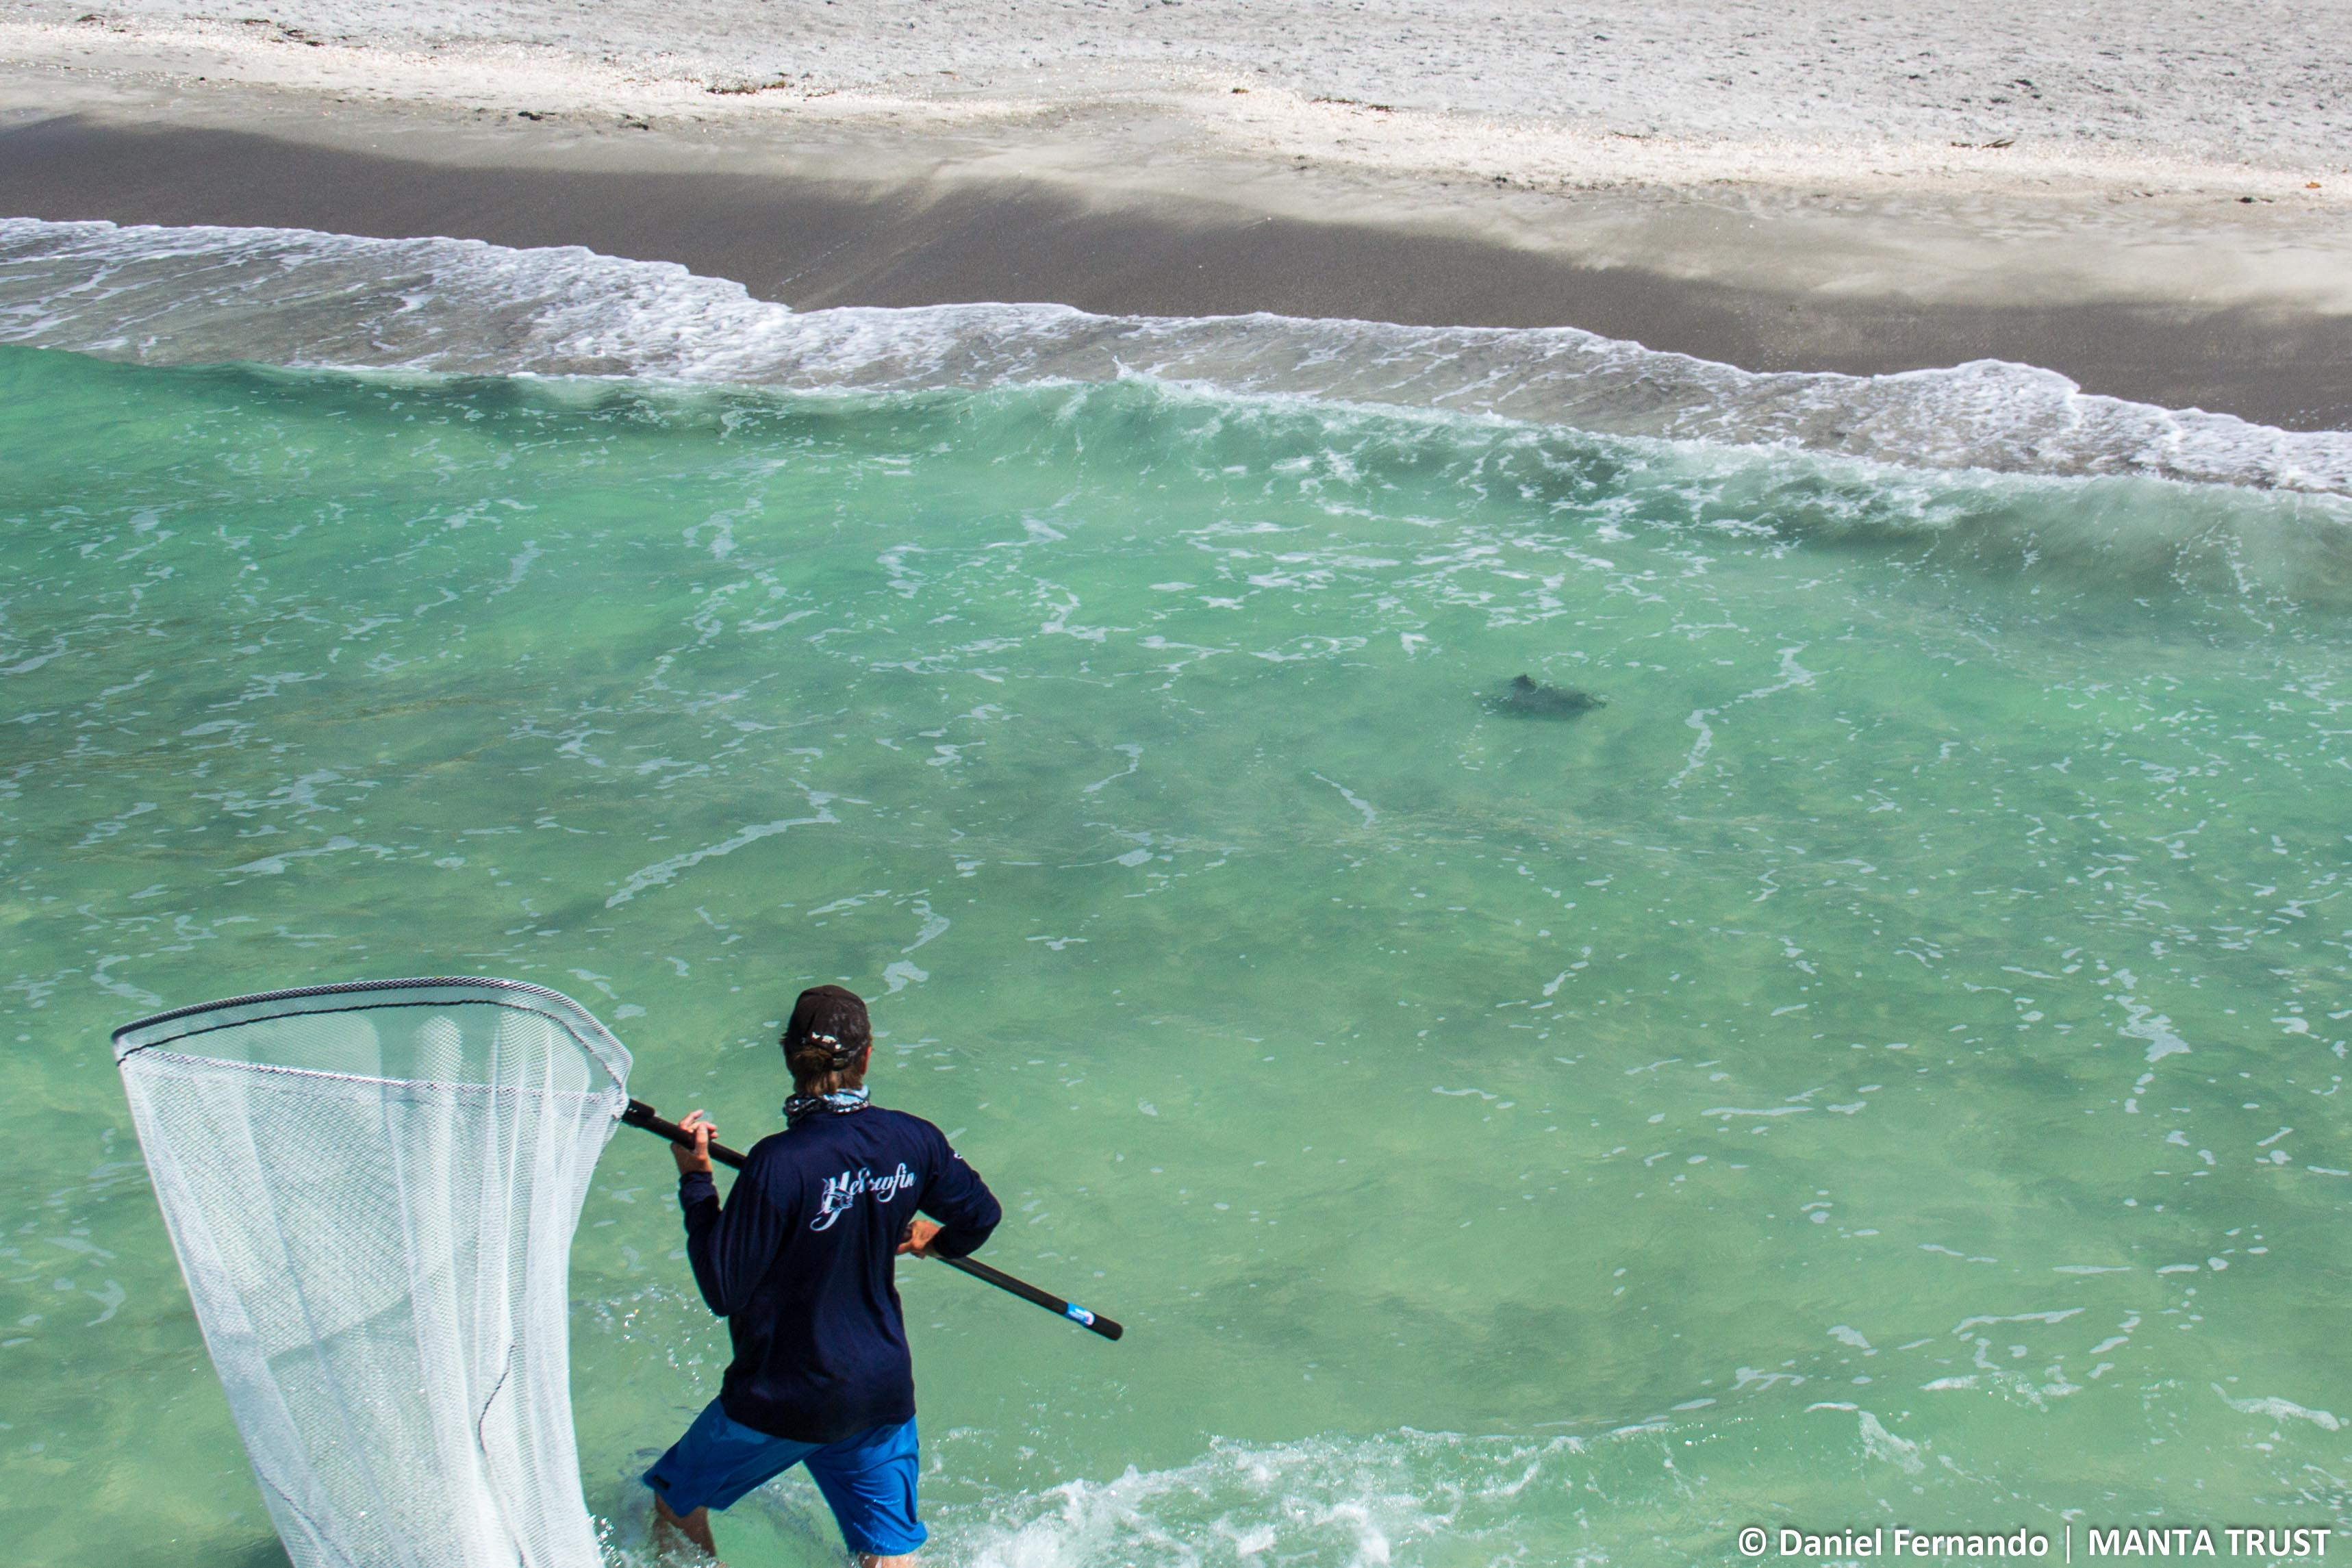 © Daniel Fernando – a researcher attempting to capture a mobula swimming just a few feet off the beach